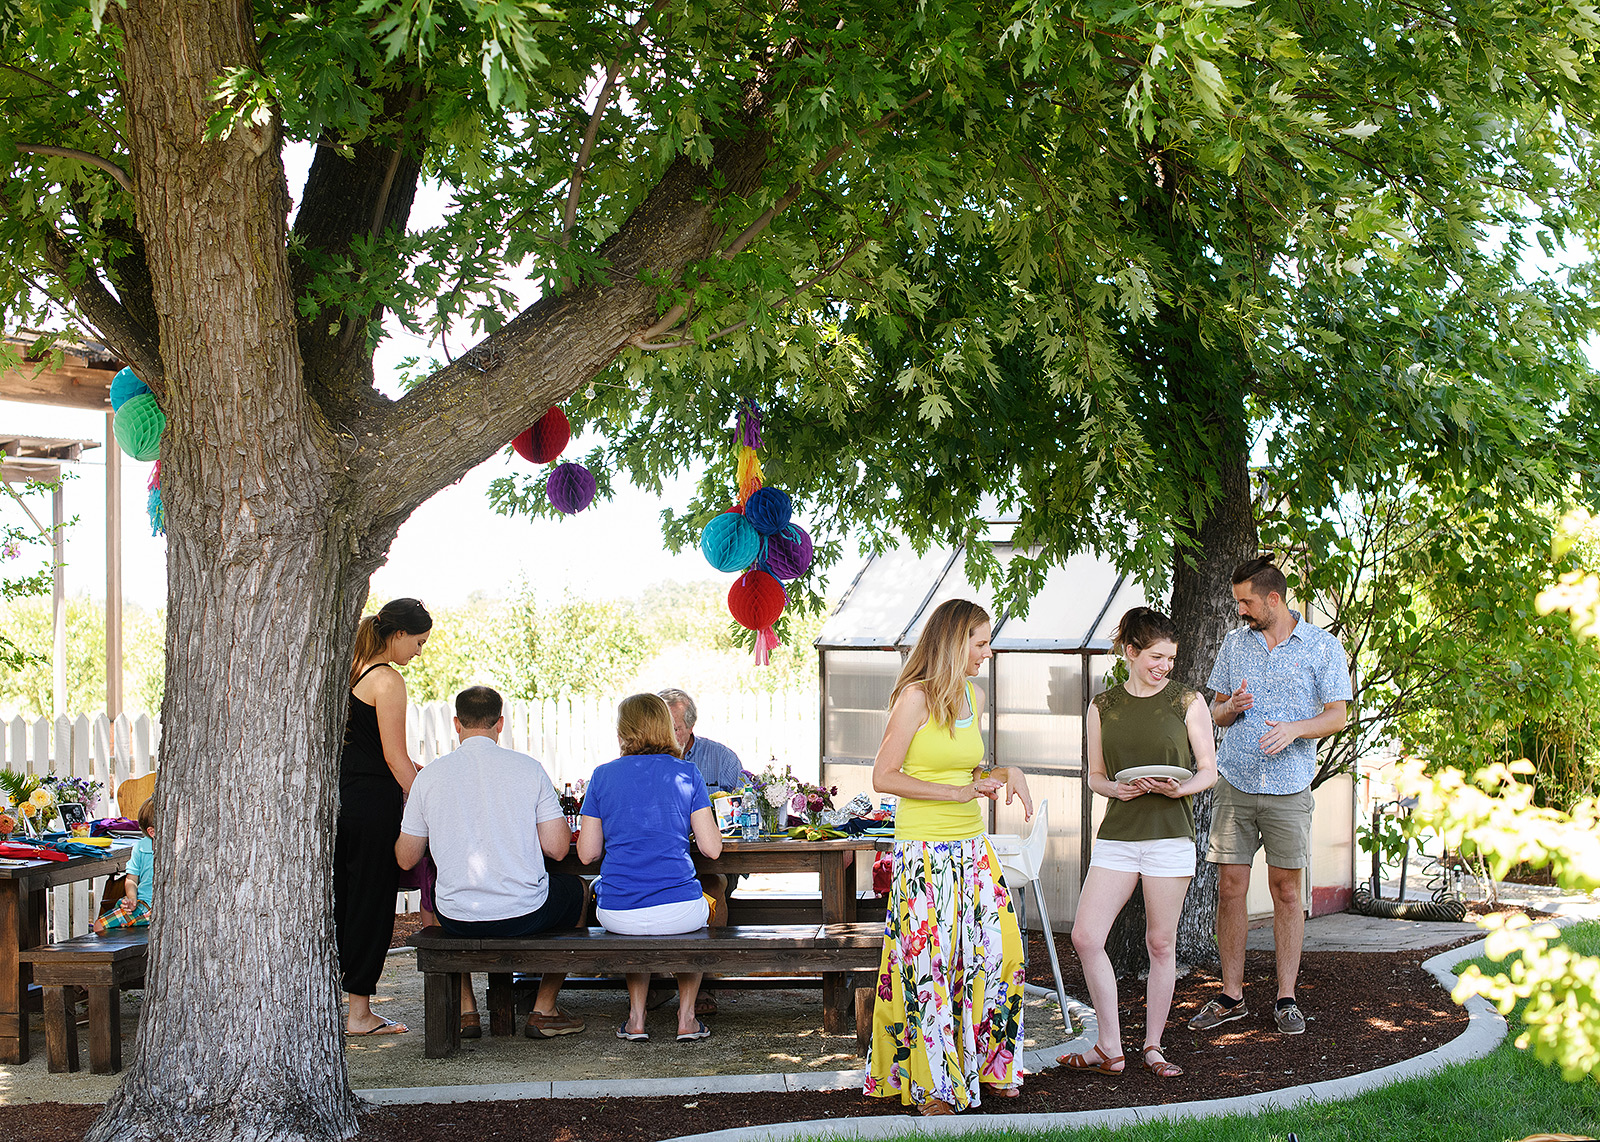 First birthday party outdoors with guests enjoying themselves